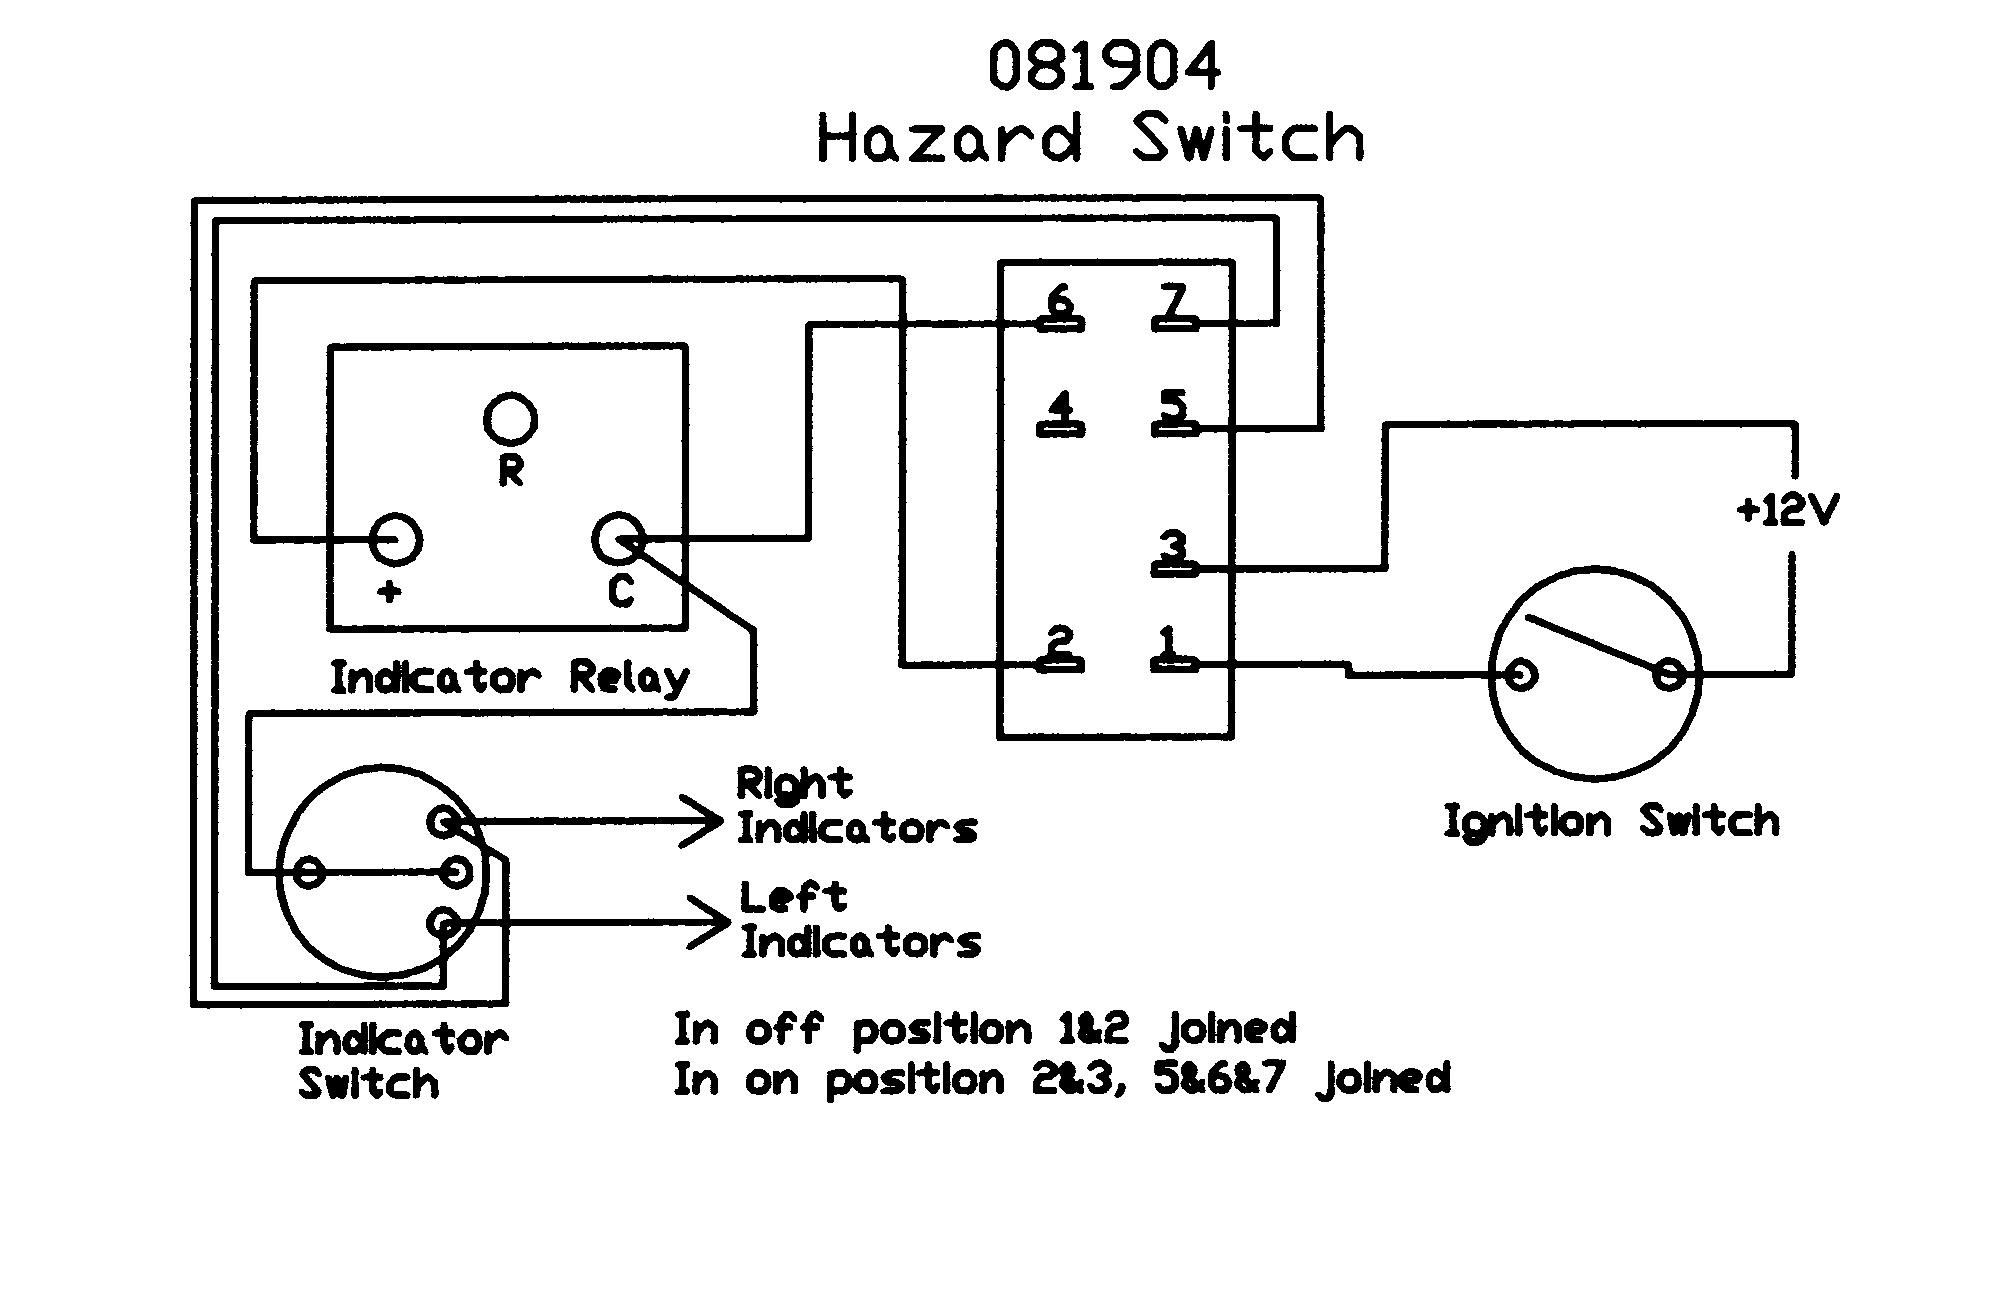 Light Switch Schematic Wiring Diagram Hazard Rocker 081904